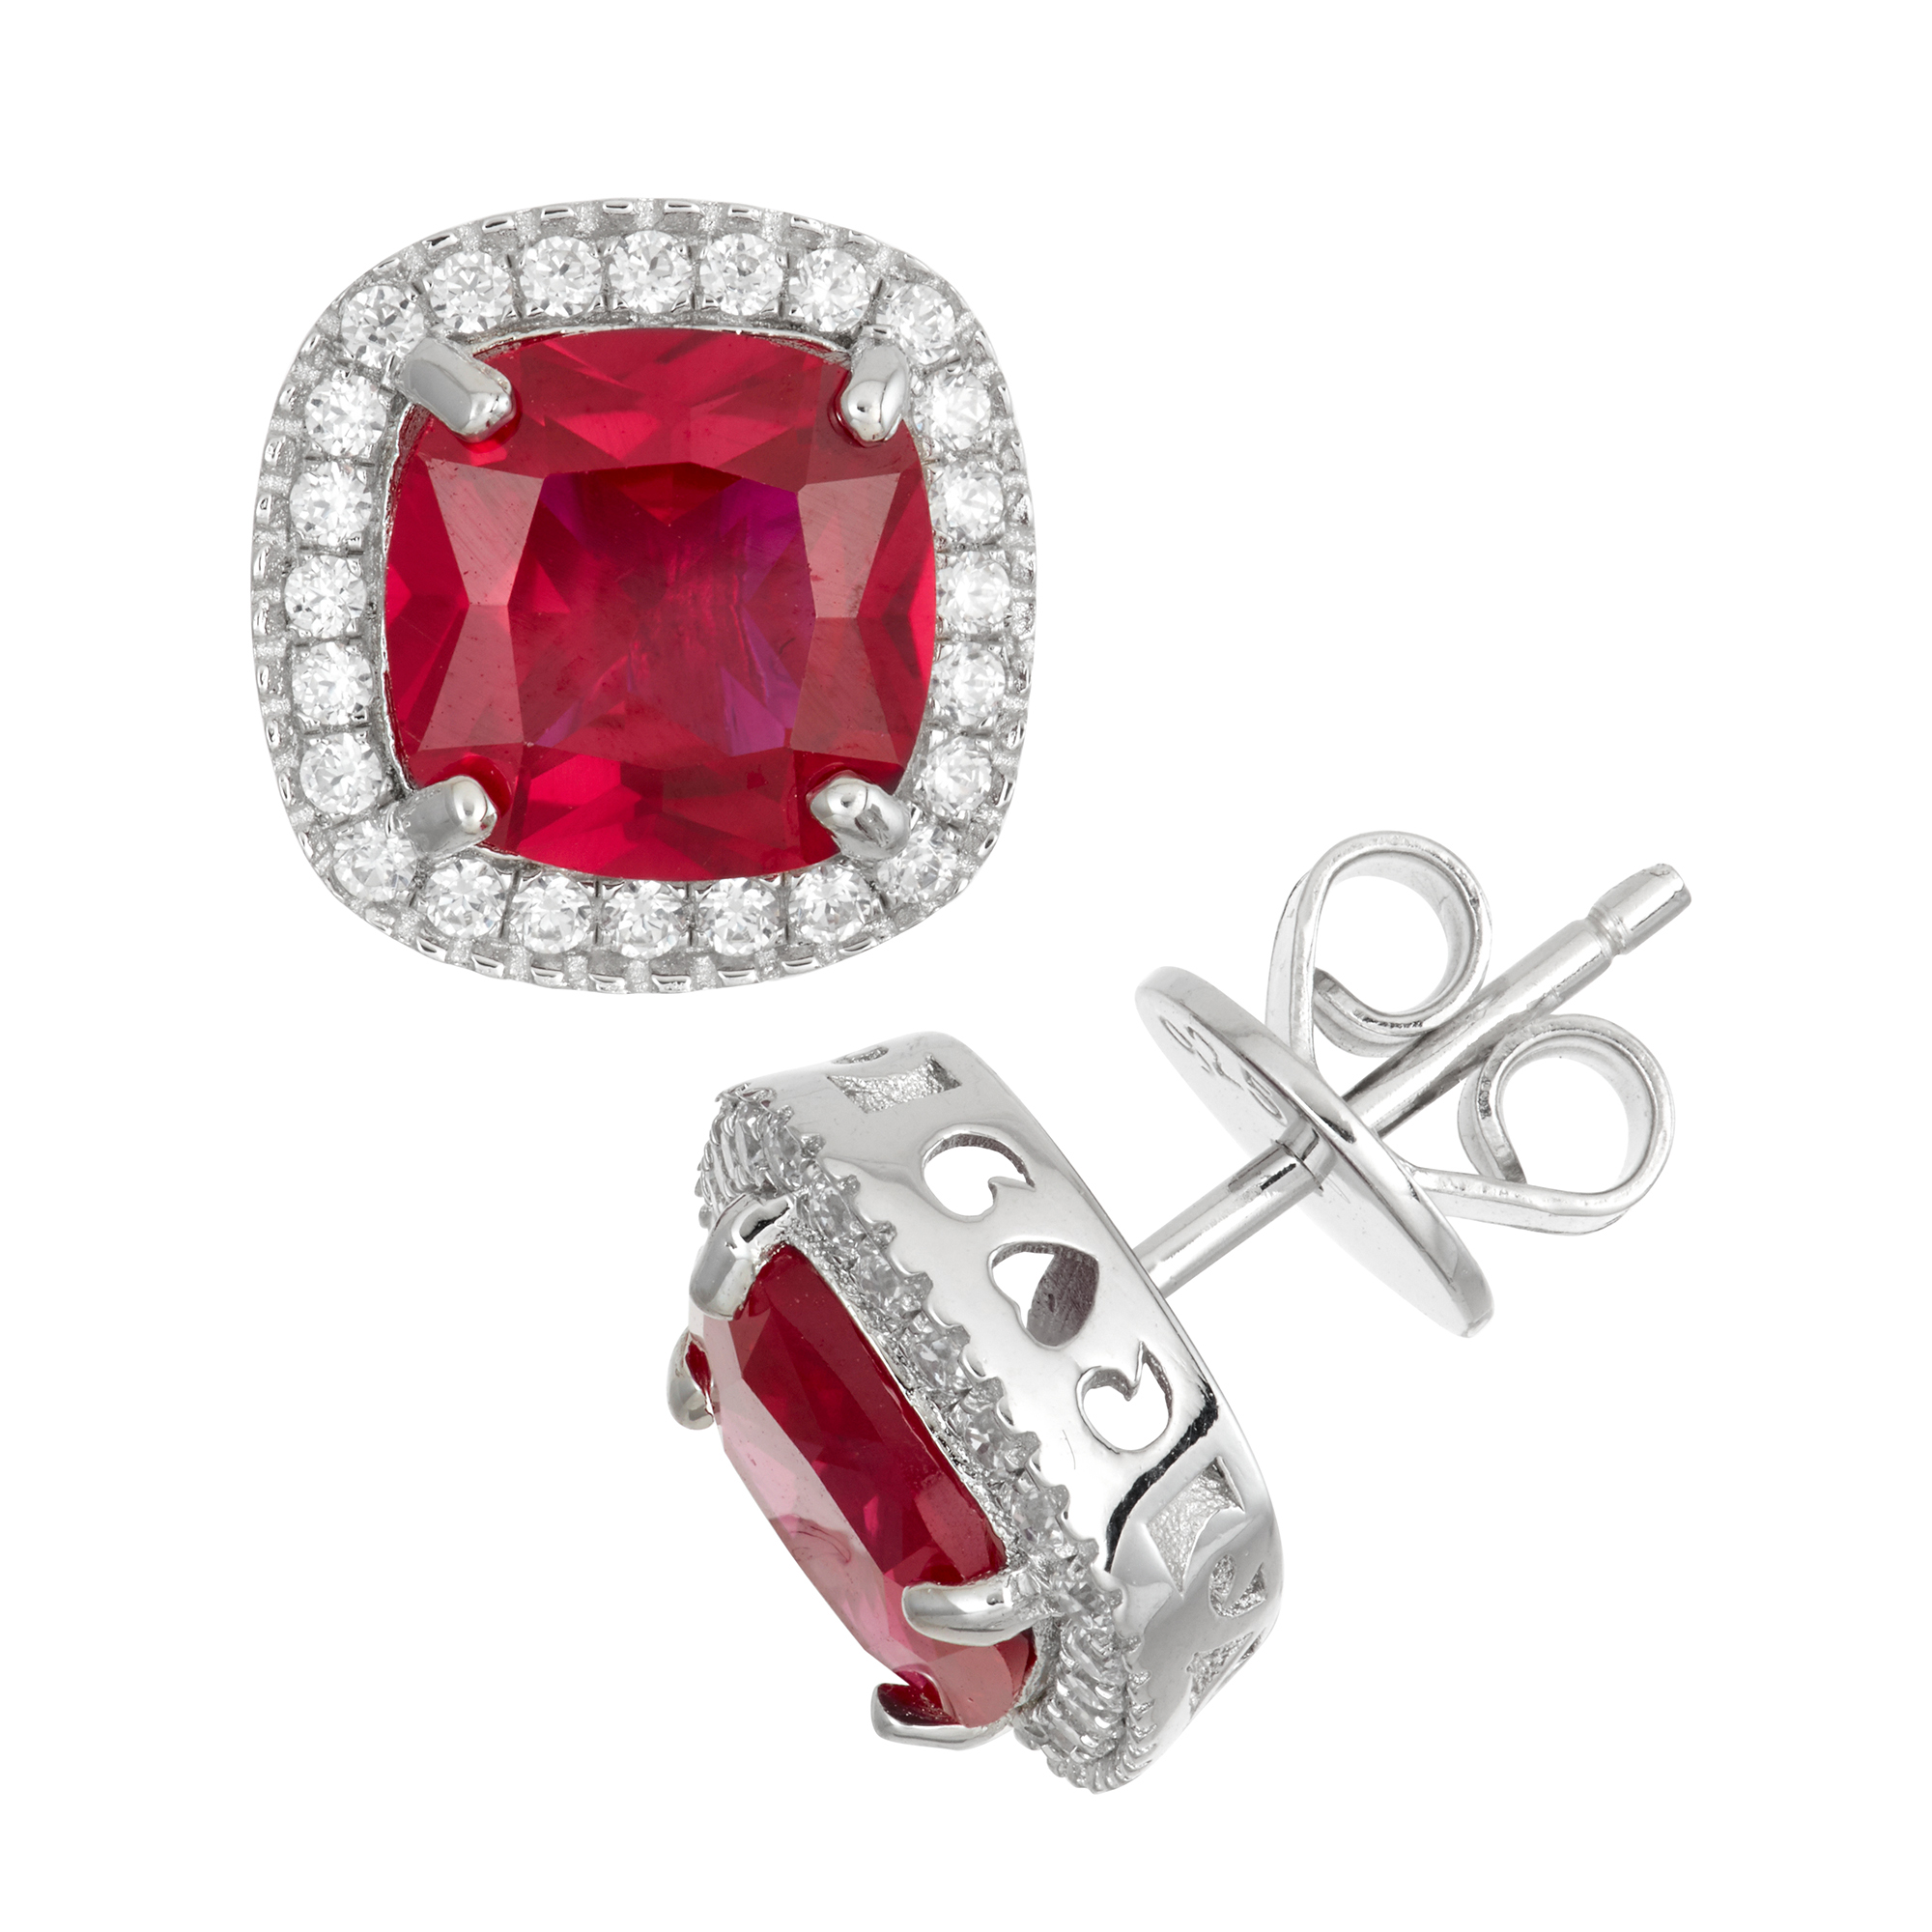 Sterling-Silver-Earring-with-Square-Faceted-Gemstone-and-Gallery-of-Dalloz-CZ